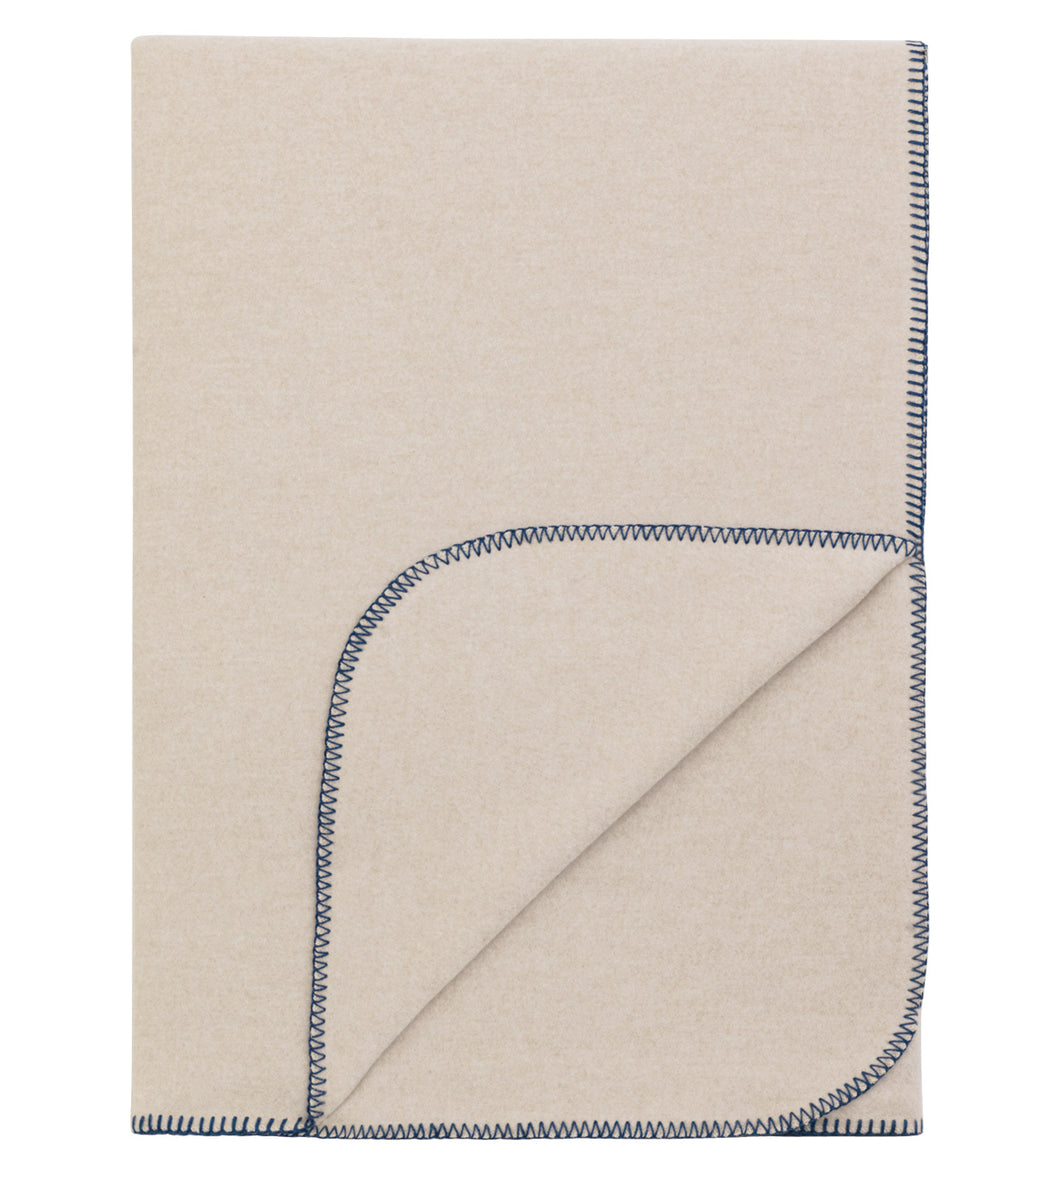 Neutral Solid Rustic 100% Cotton Throw With Blue Blanket Stitch